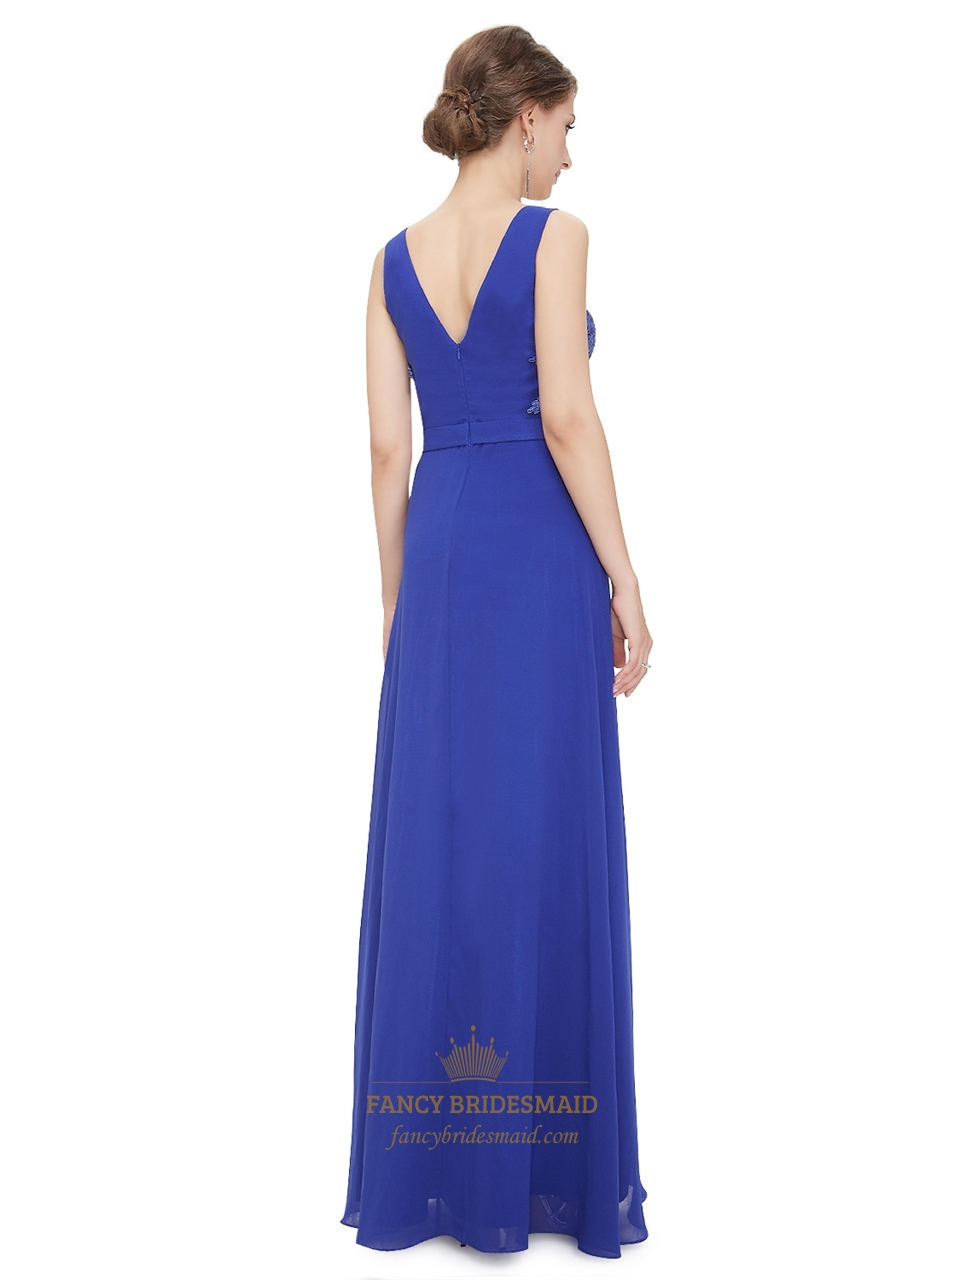 Royal Blue V Neck Chiffon Prom Dress With Lace Embellished ...